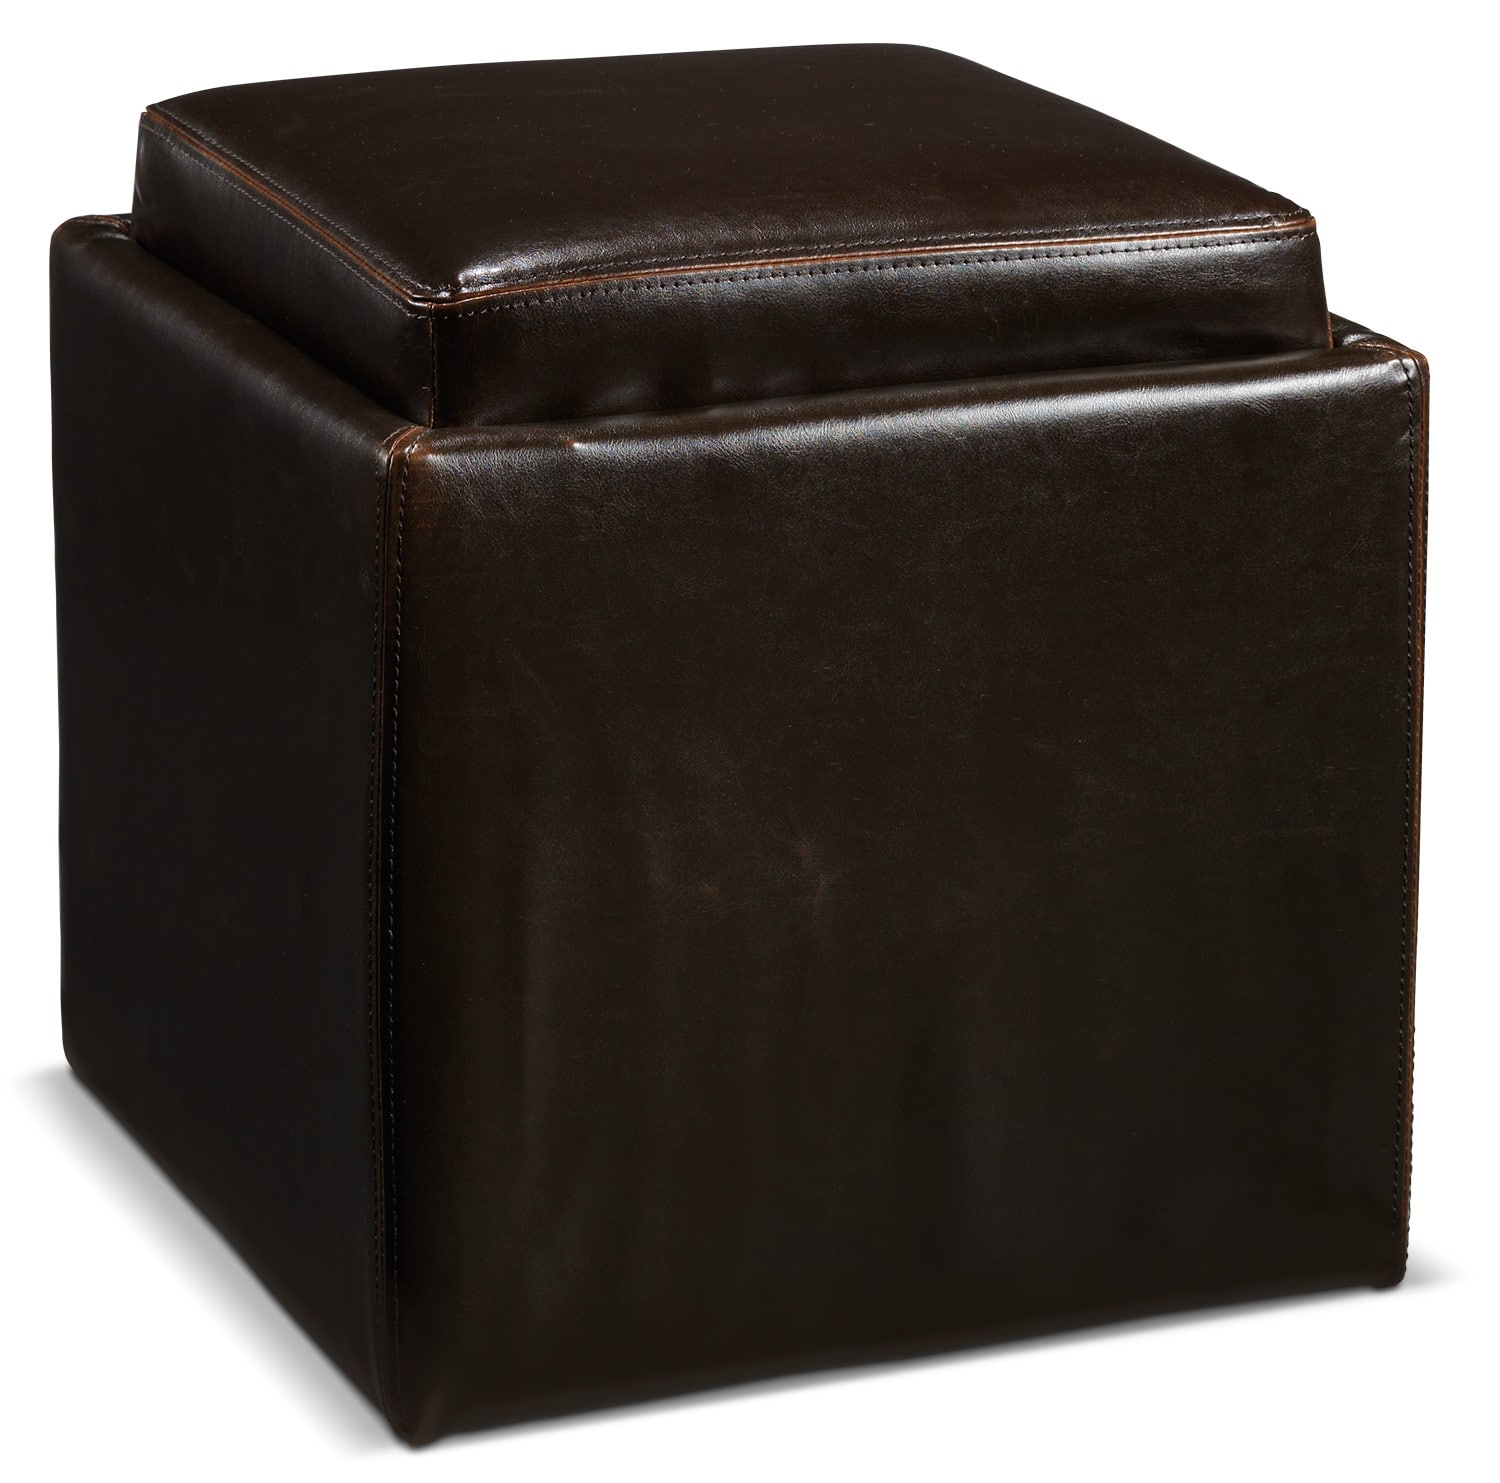 Living Room Furniture - Aaliyah Storage Ottoman - Espresso